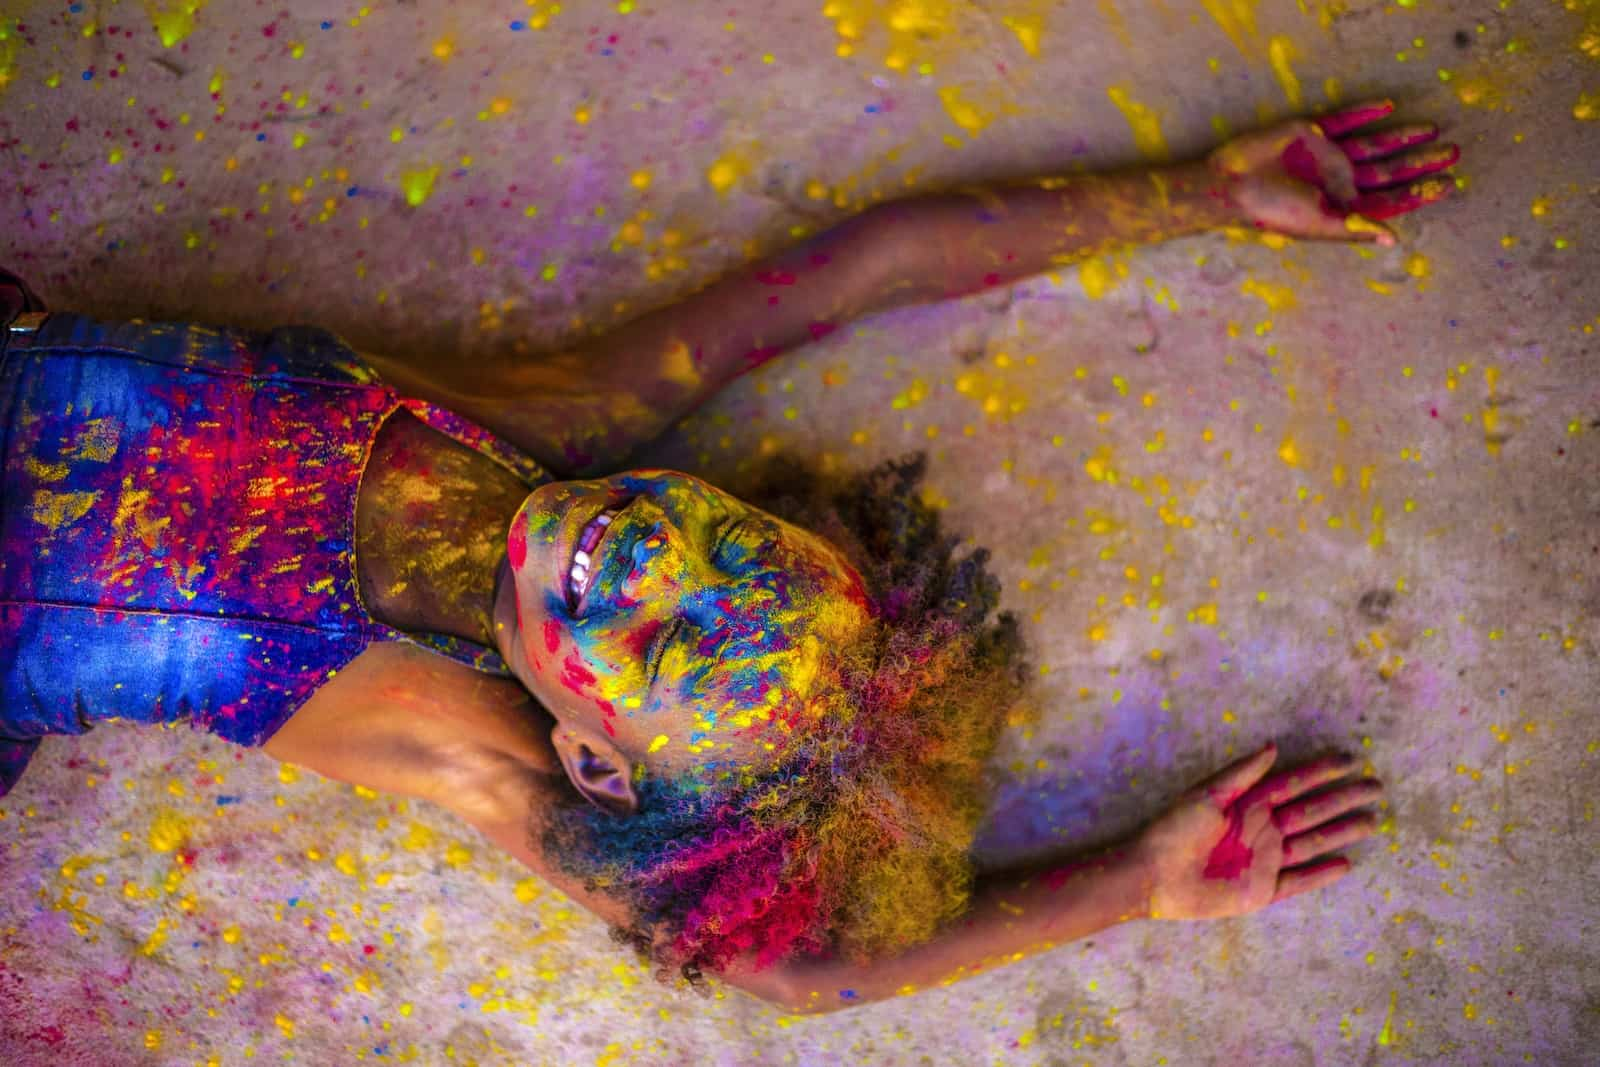 A girl covered in bright paint colors smiles, laying on the ground.